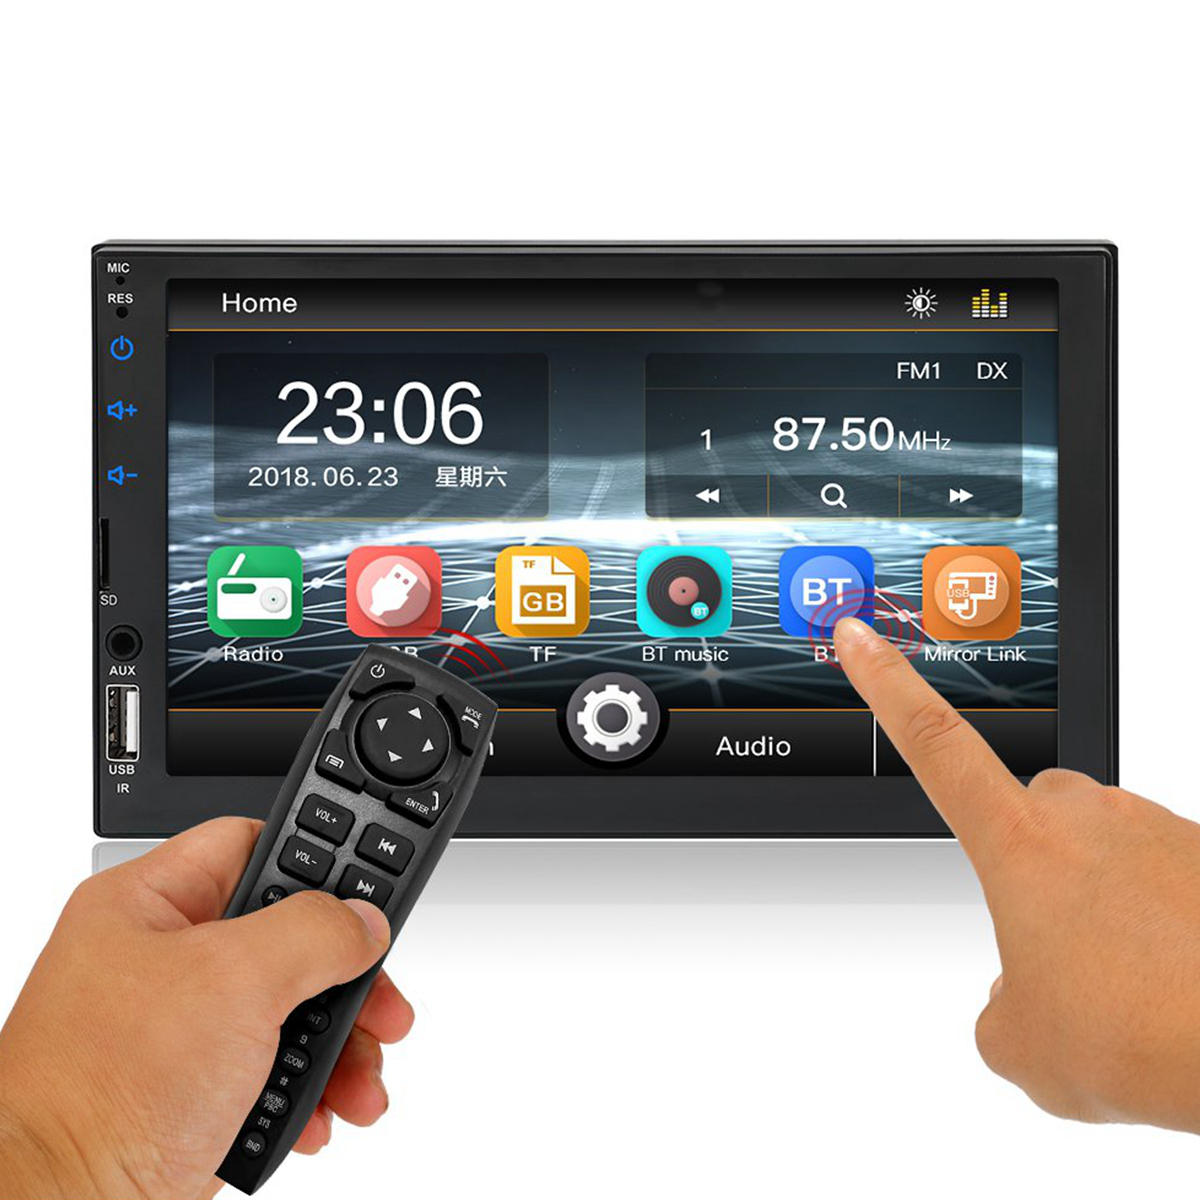 7 Inch 2DIN WINCE Car MP5 Player Touch Screen FM Radio Stereo Remote Control Support Rear Camera